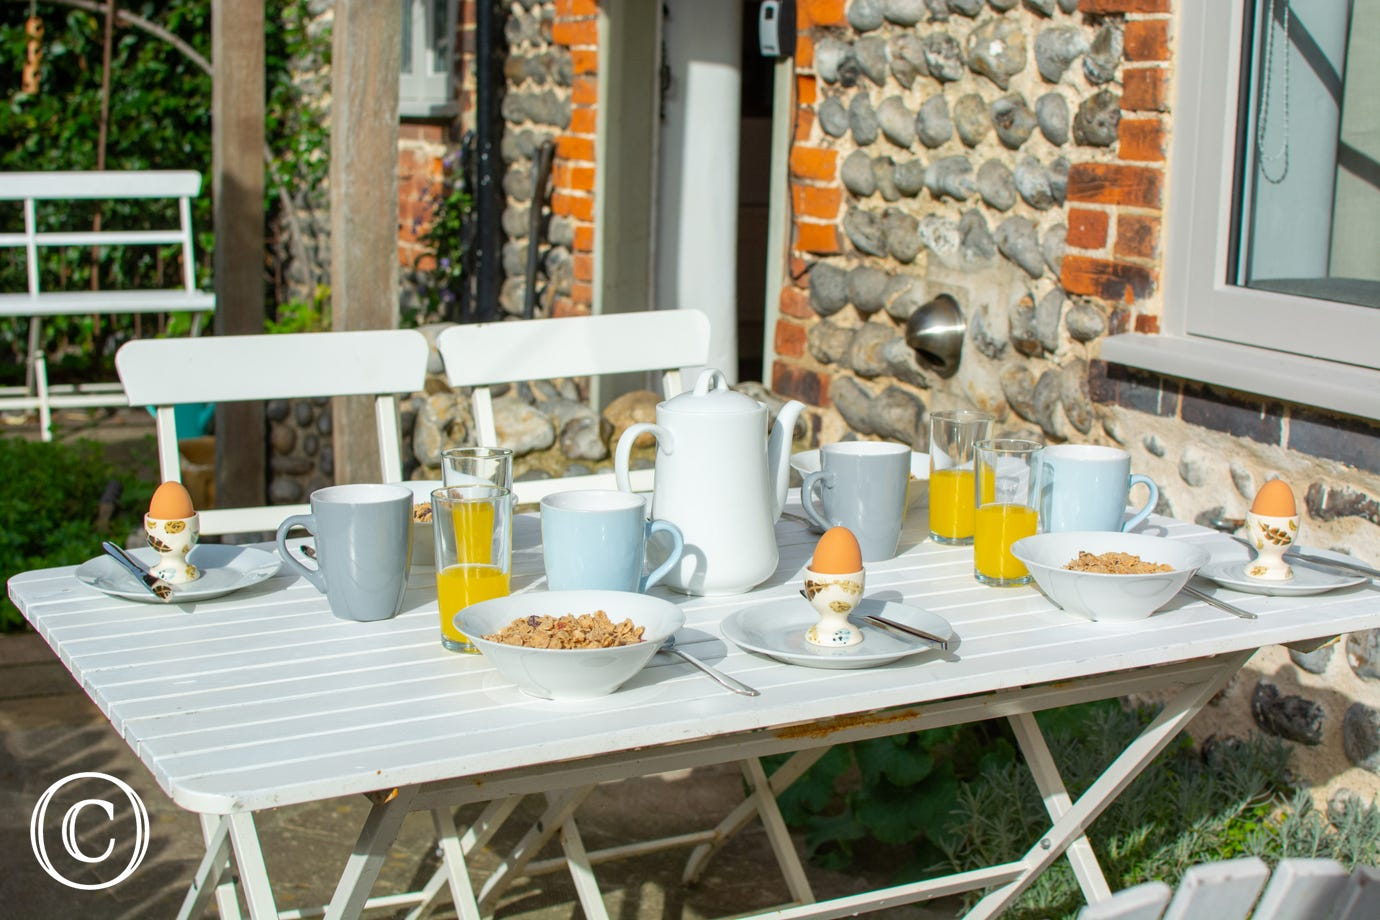 Breakfast alfresco